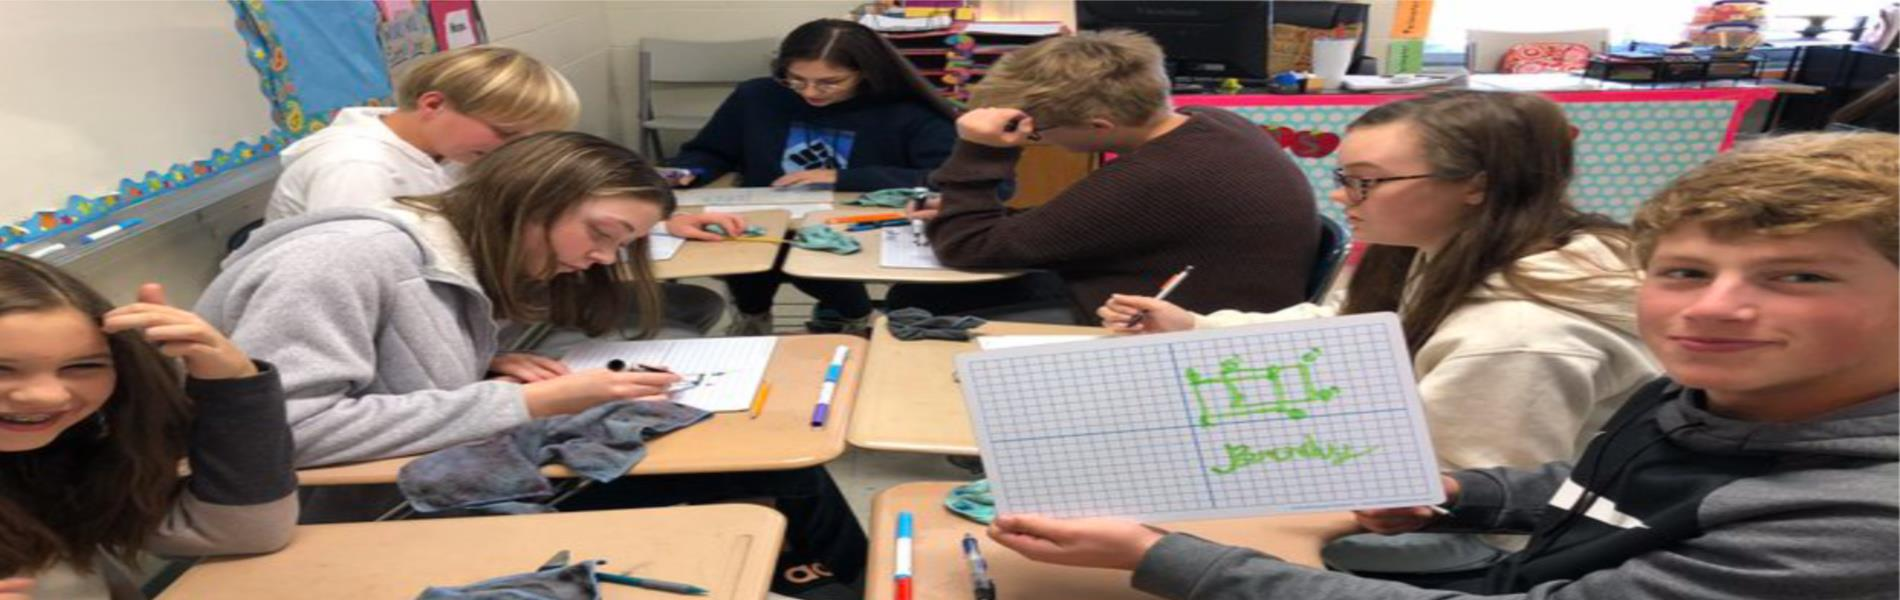 Students working in Math